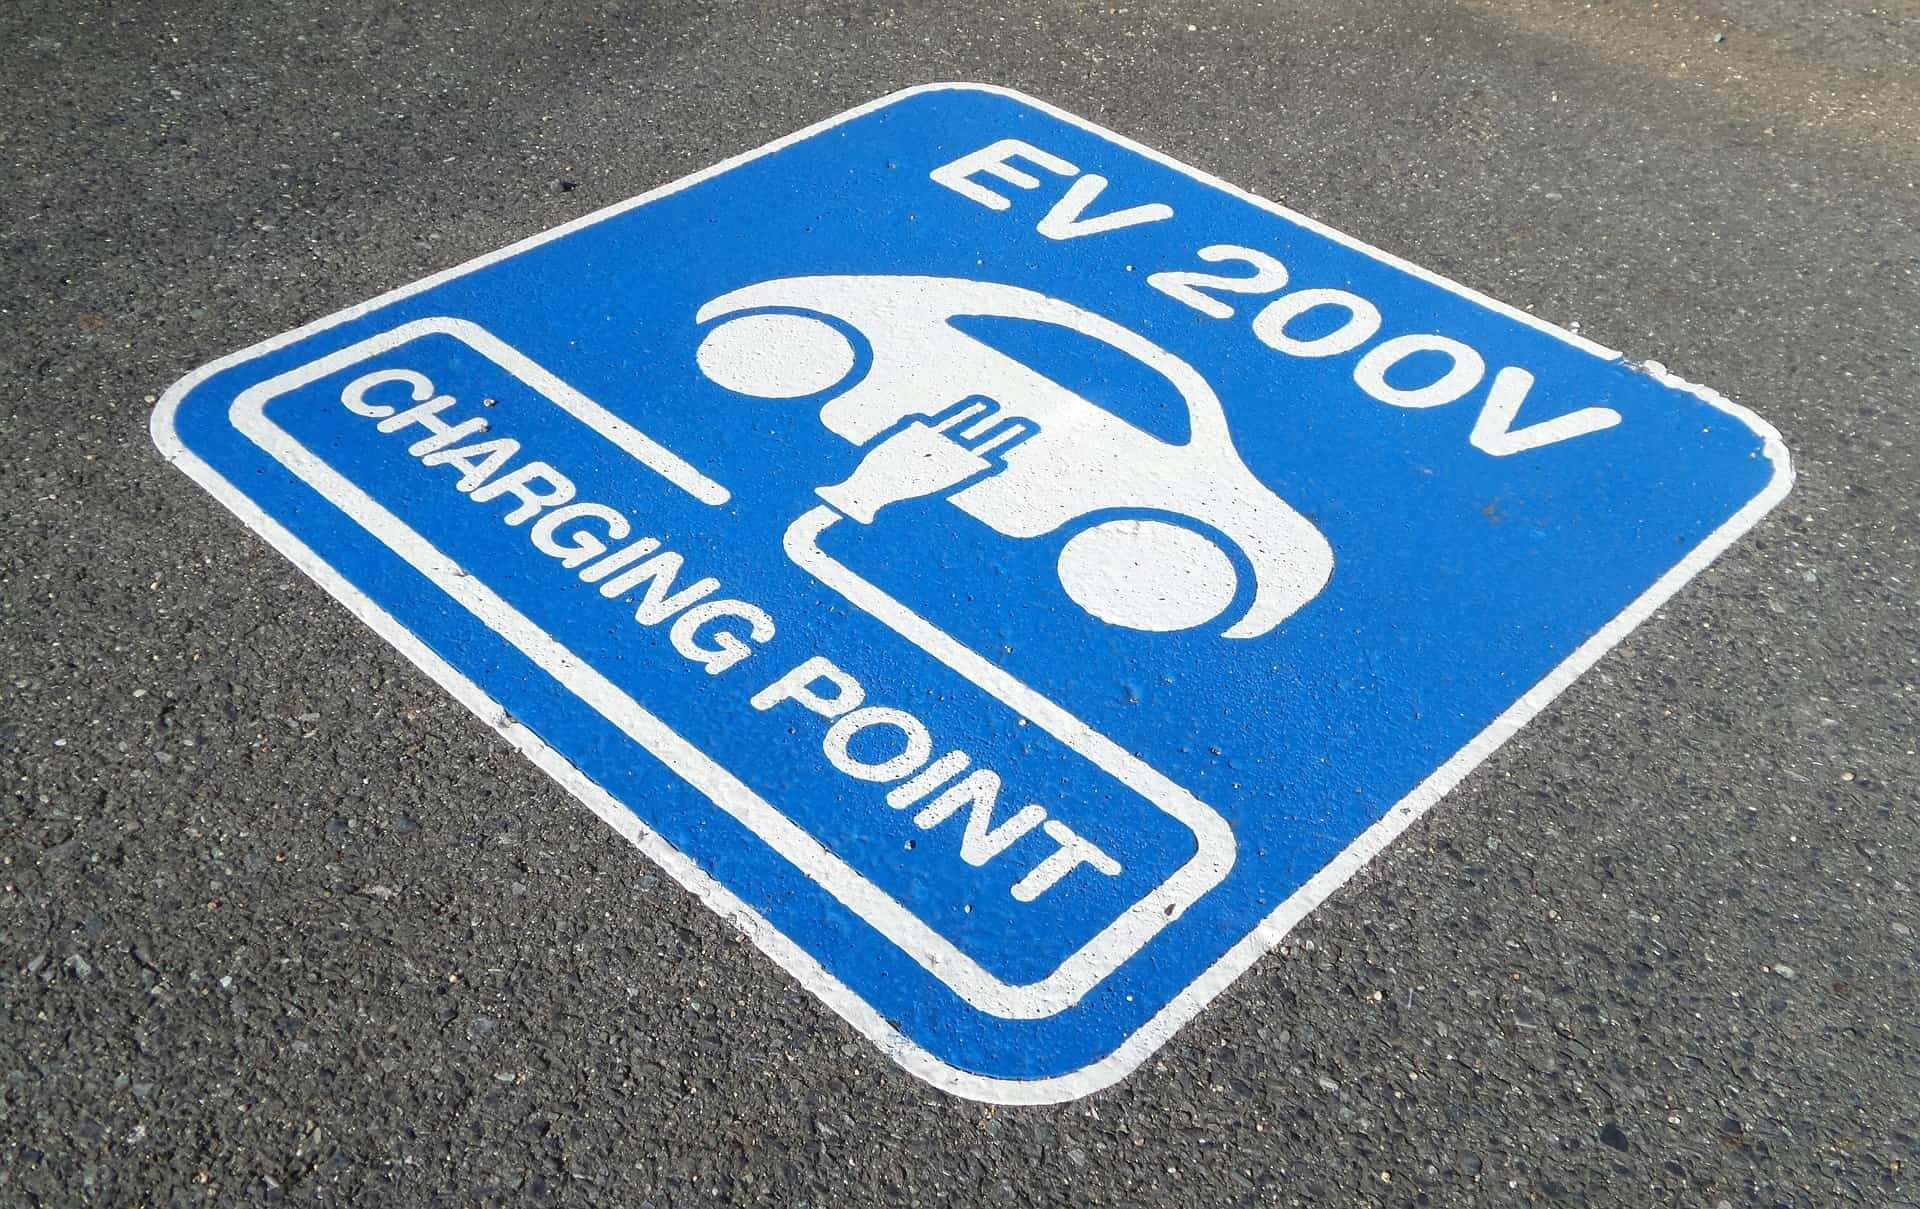 Electric vehicle charging sign painted on the road